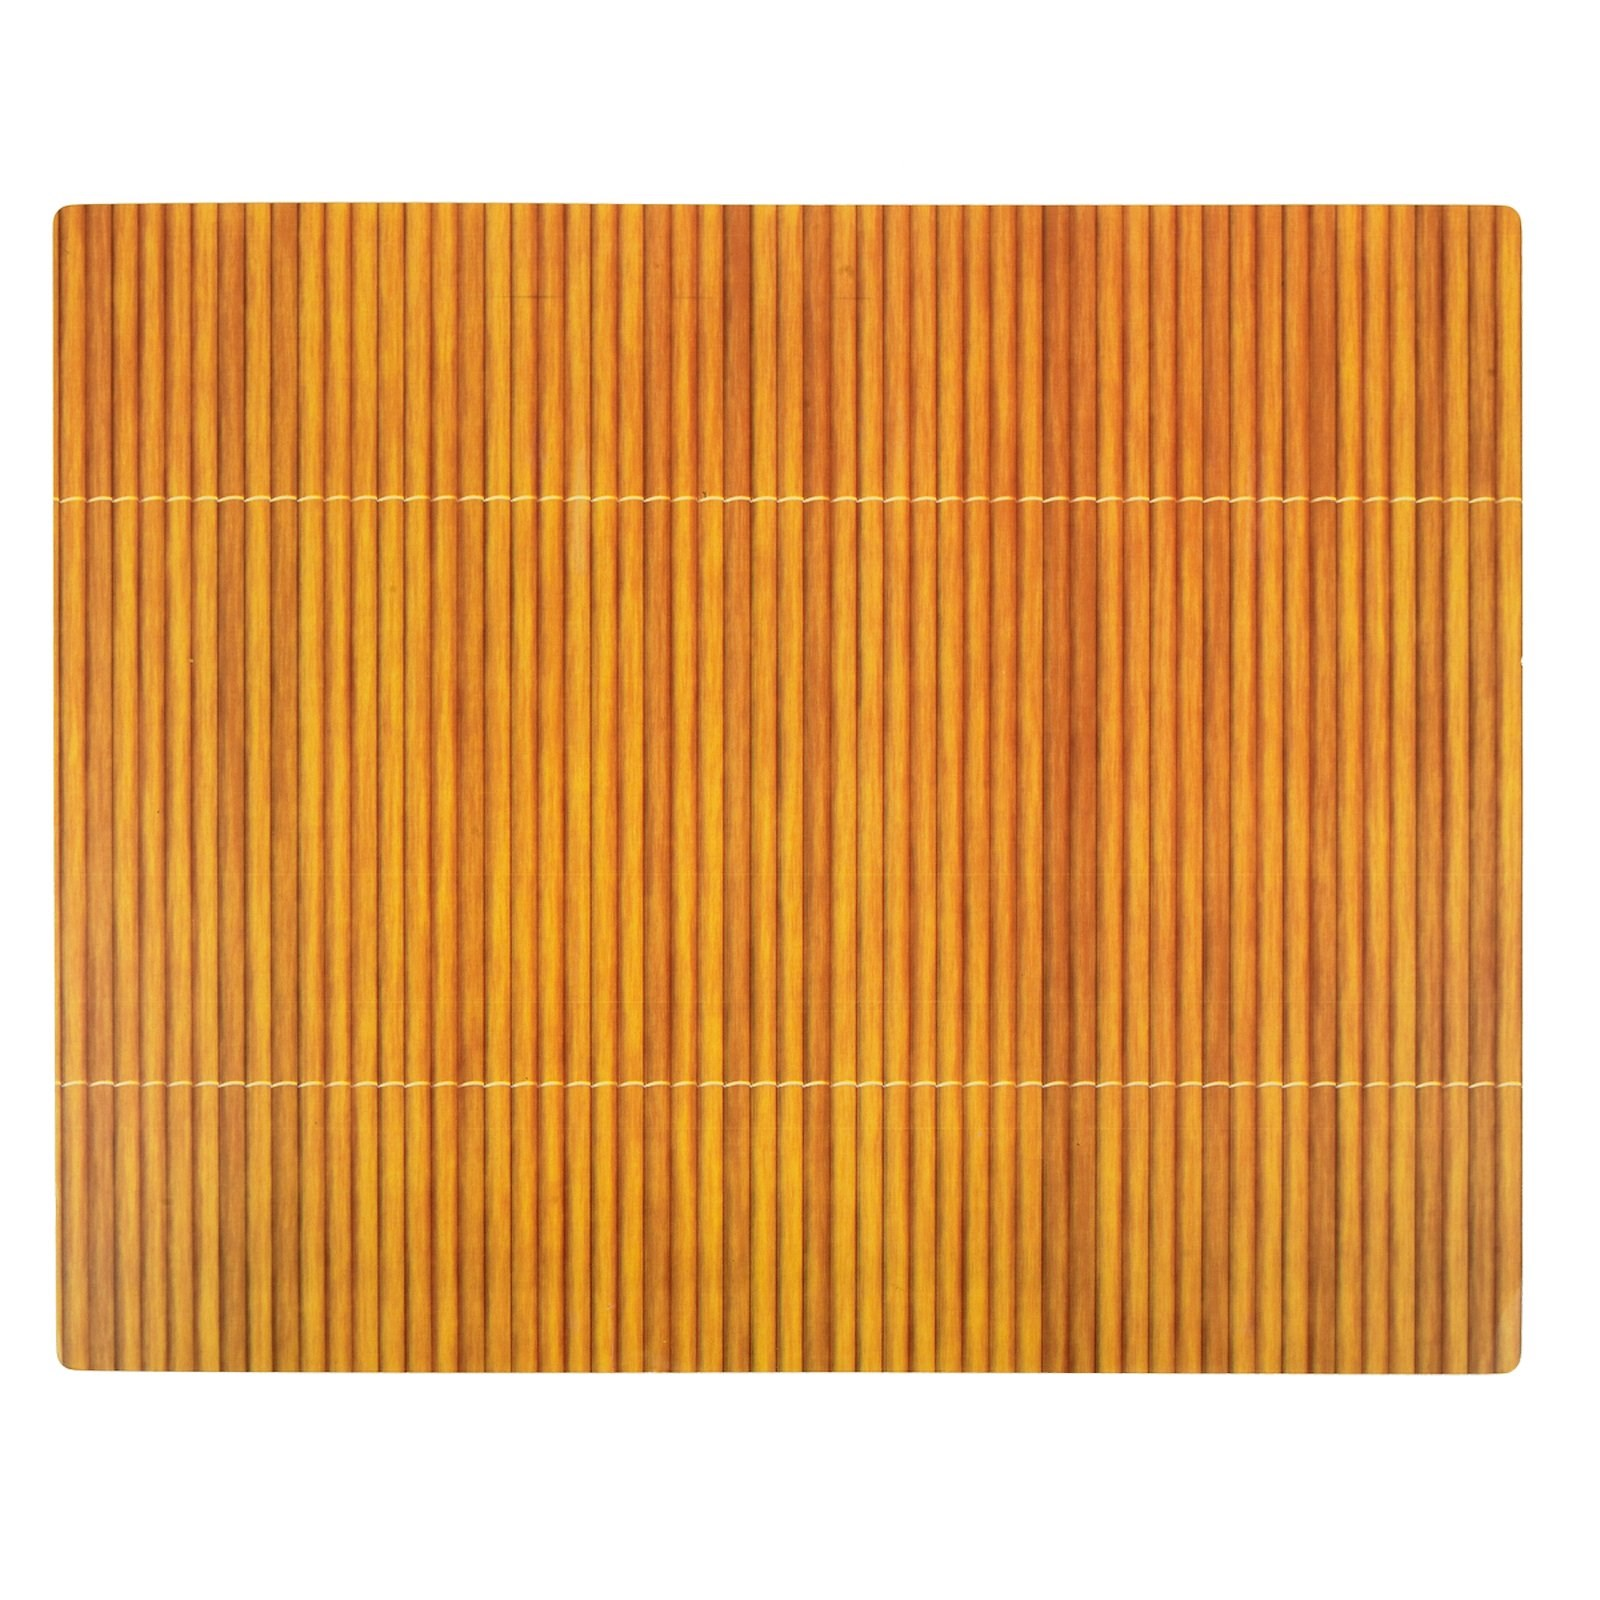 Image of Bamboo Activity Placemats